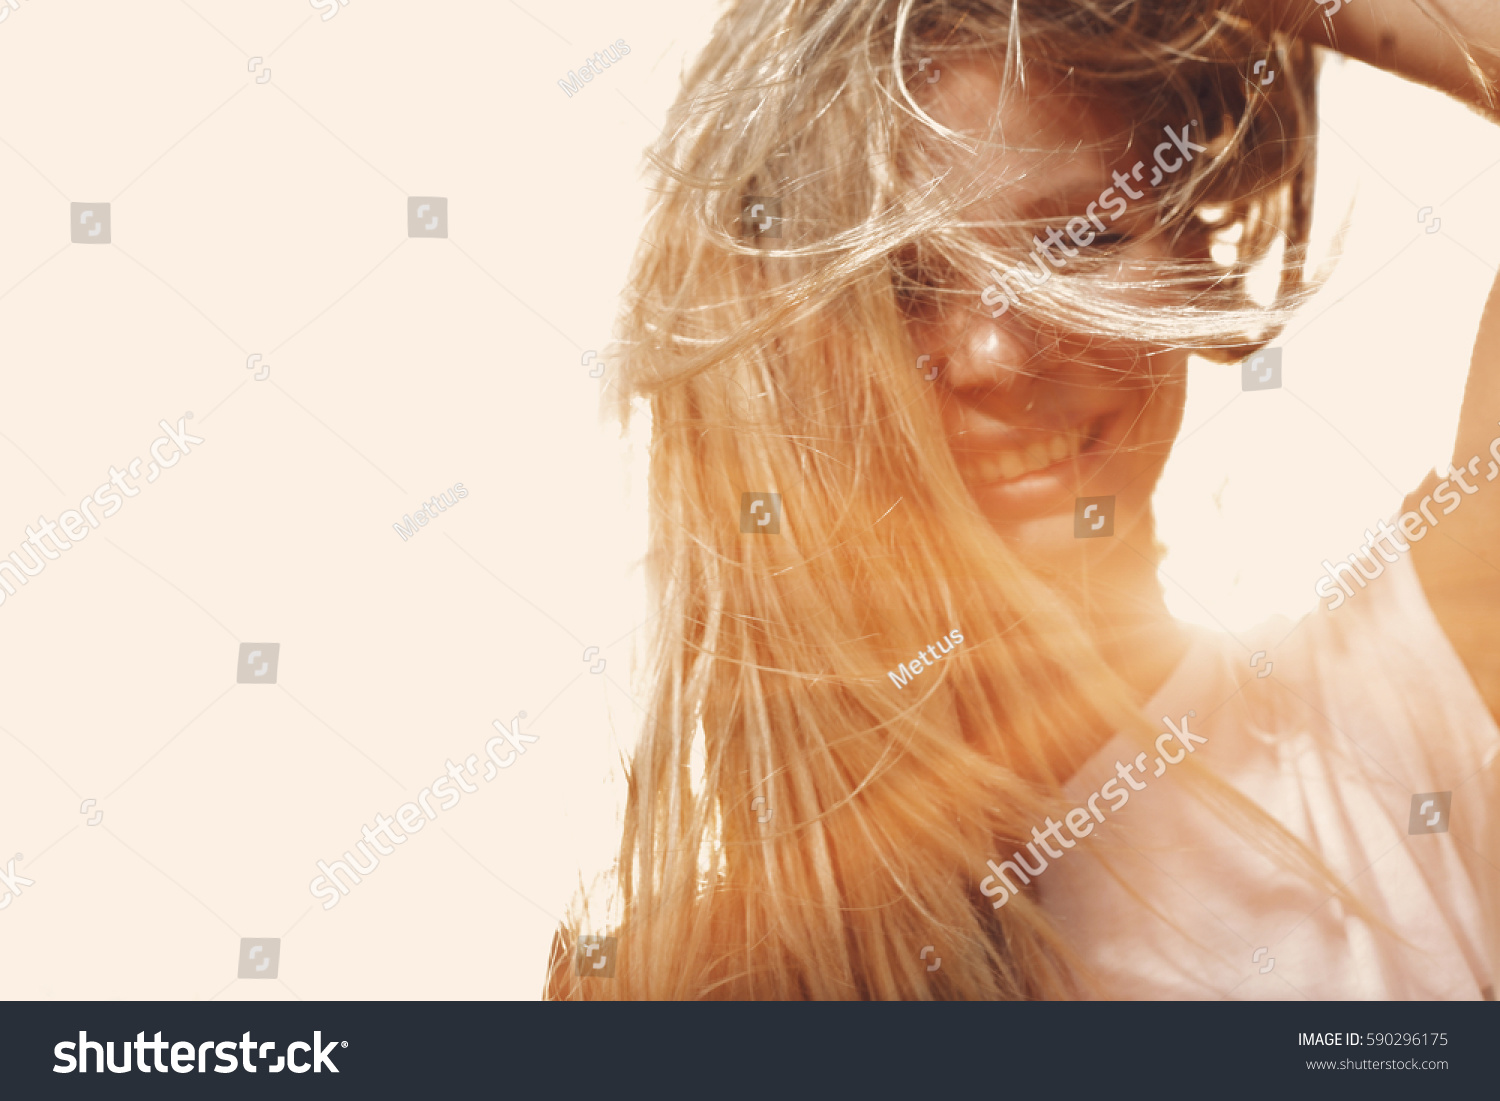 stock-photo-happy-woman-with-windy-messy